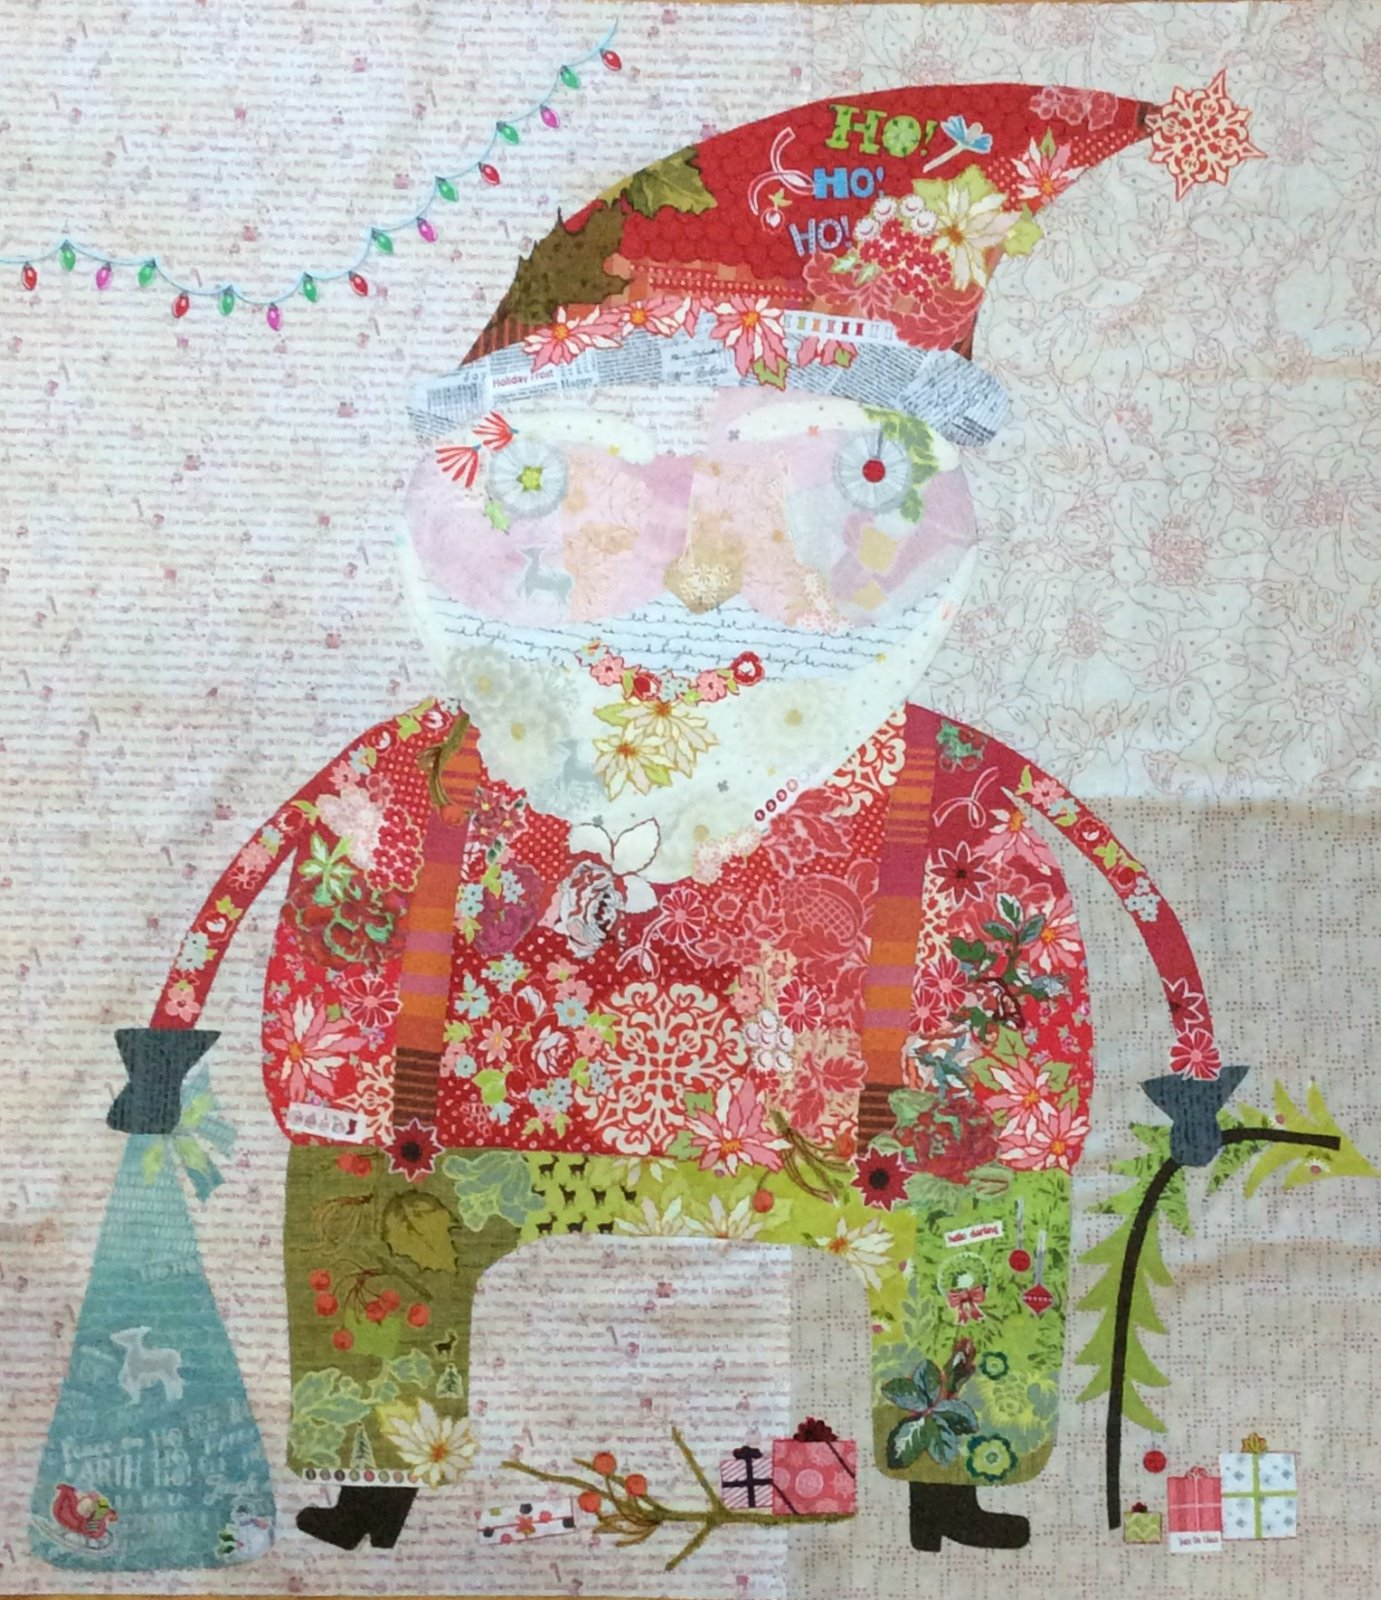 Nick Santa Collage Kit by Laura Heine